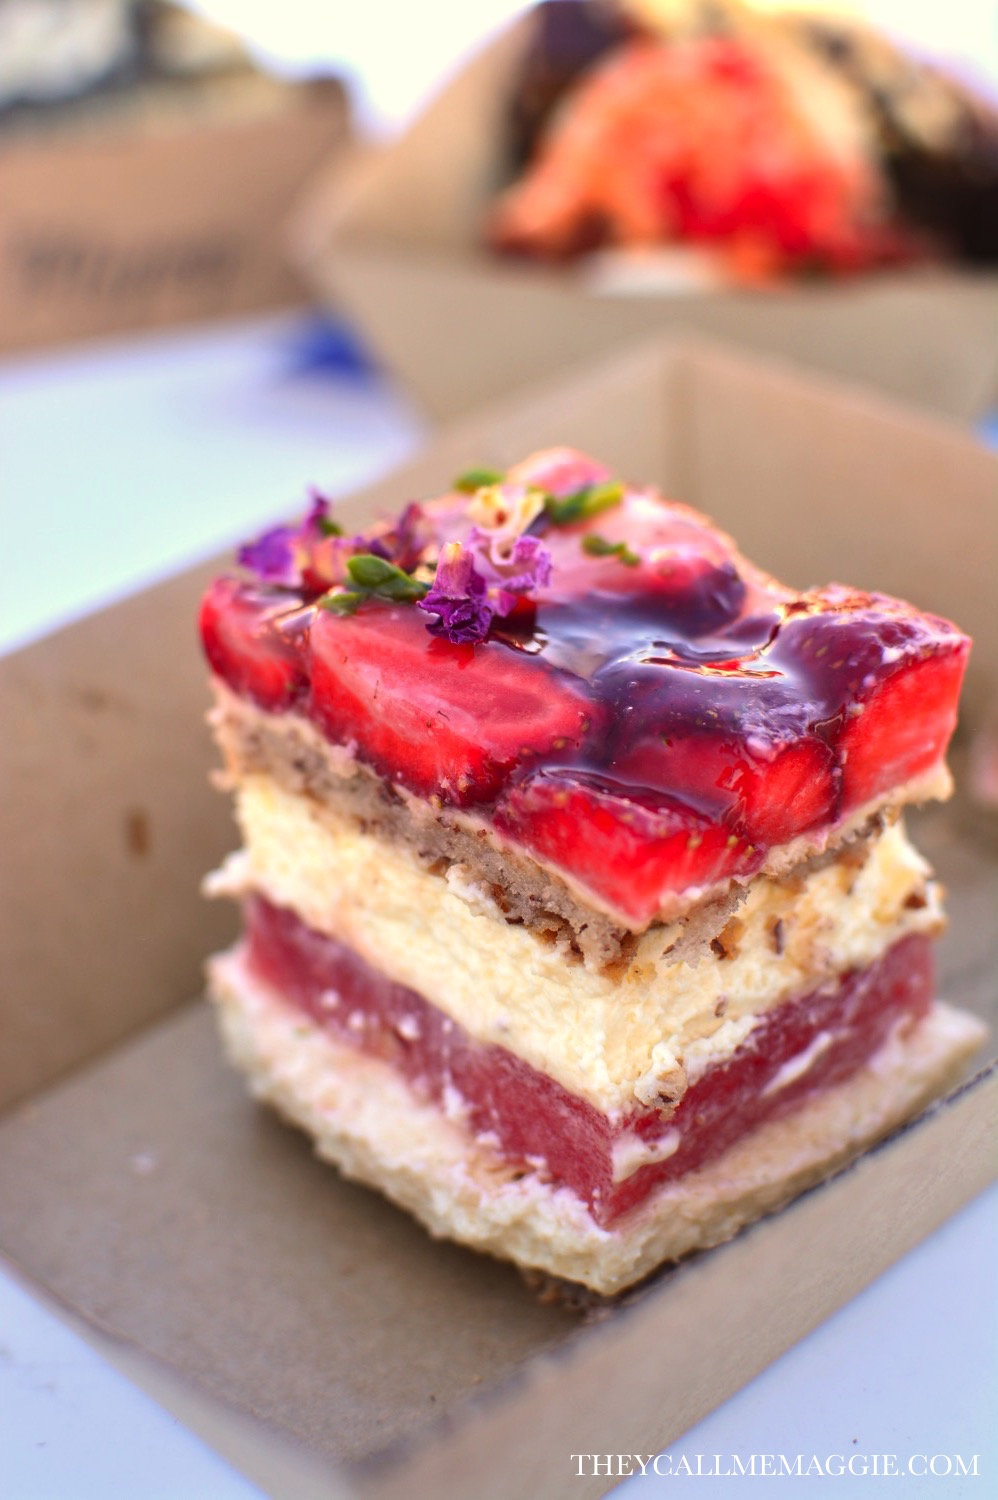 Black Star Pastry's famed strawberry watermelon cake. Come to Melbourne already!